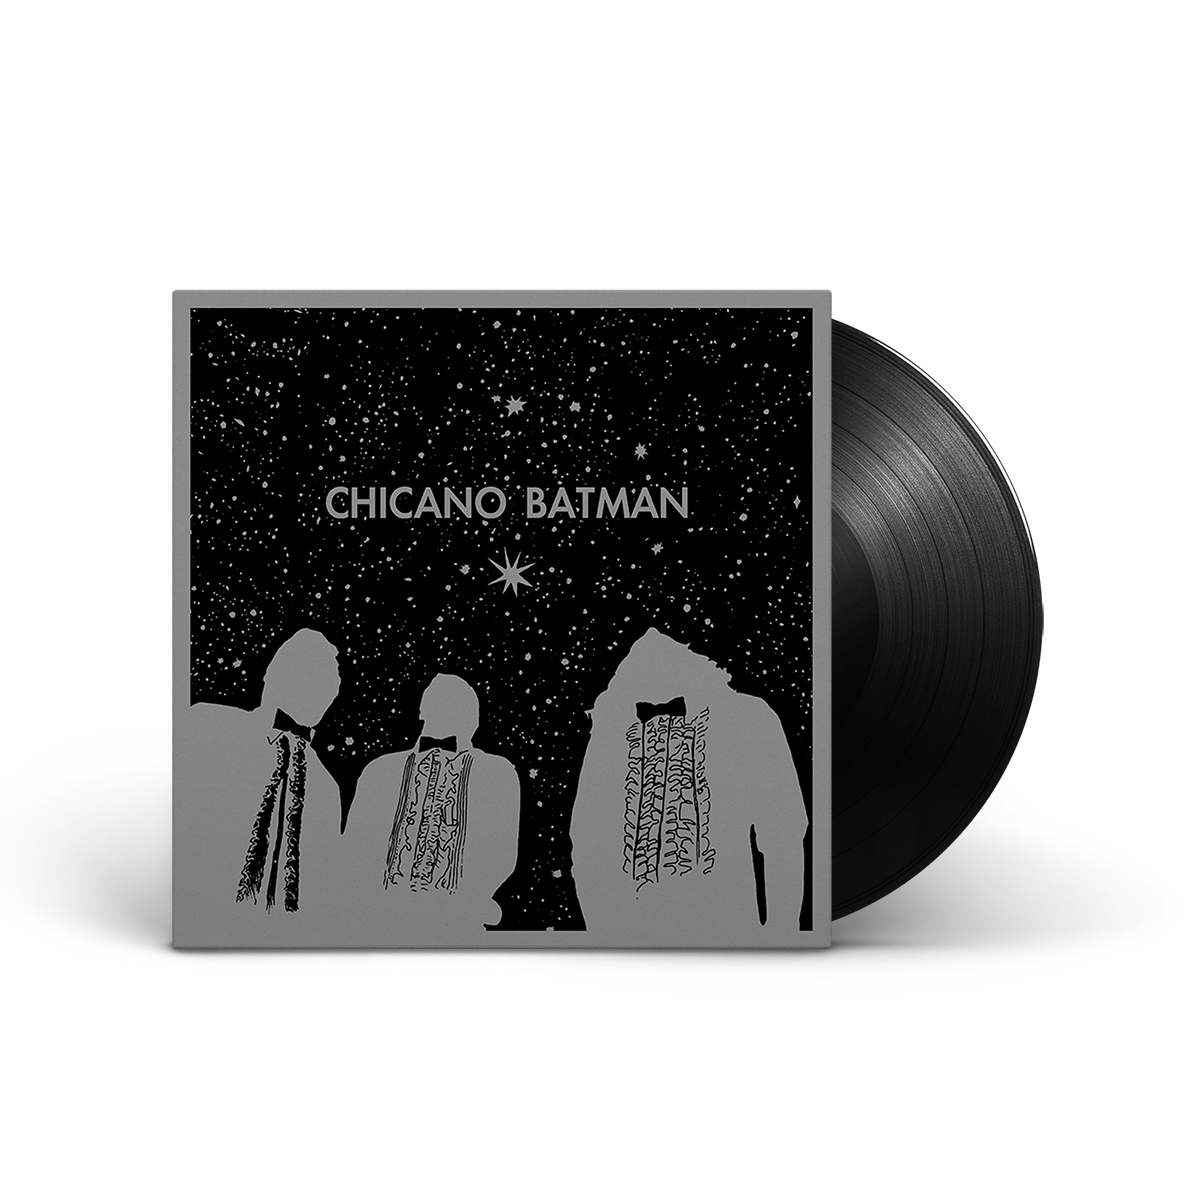 Chicano Batman - Chicano Batman Vinyl